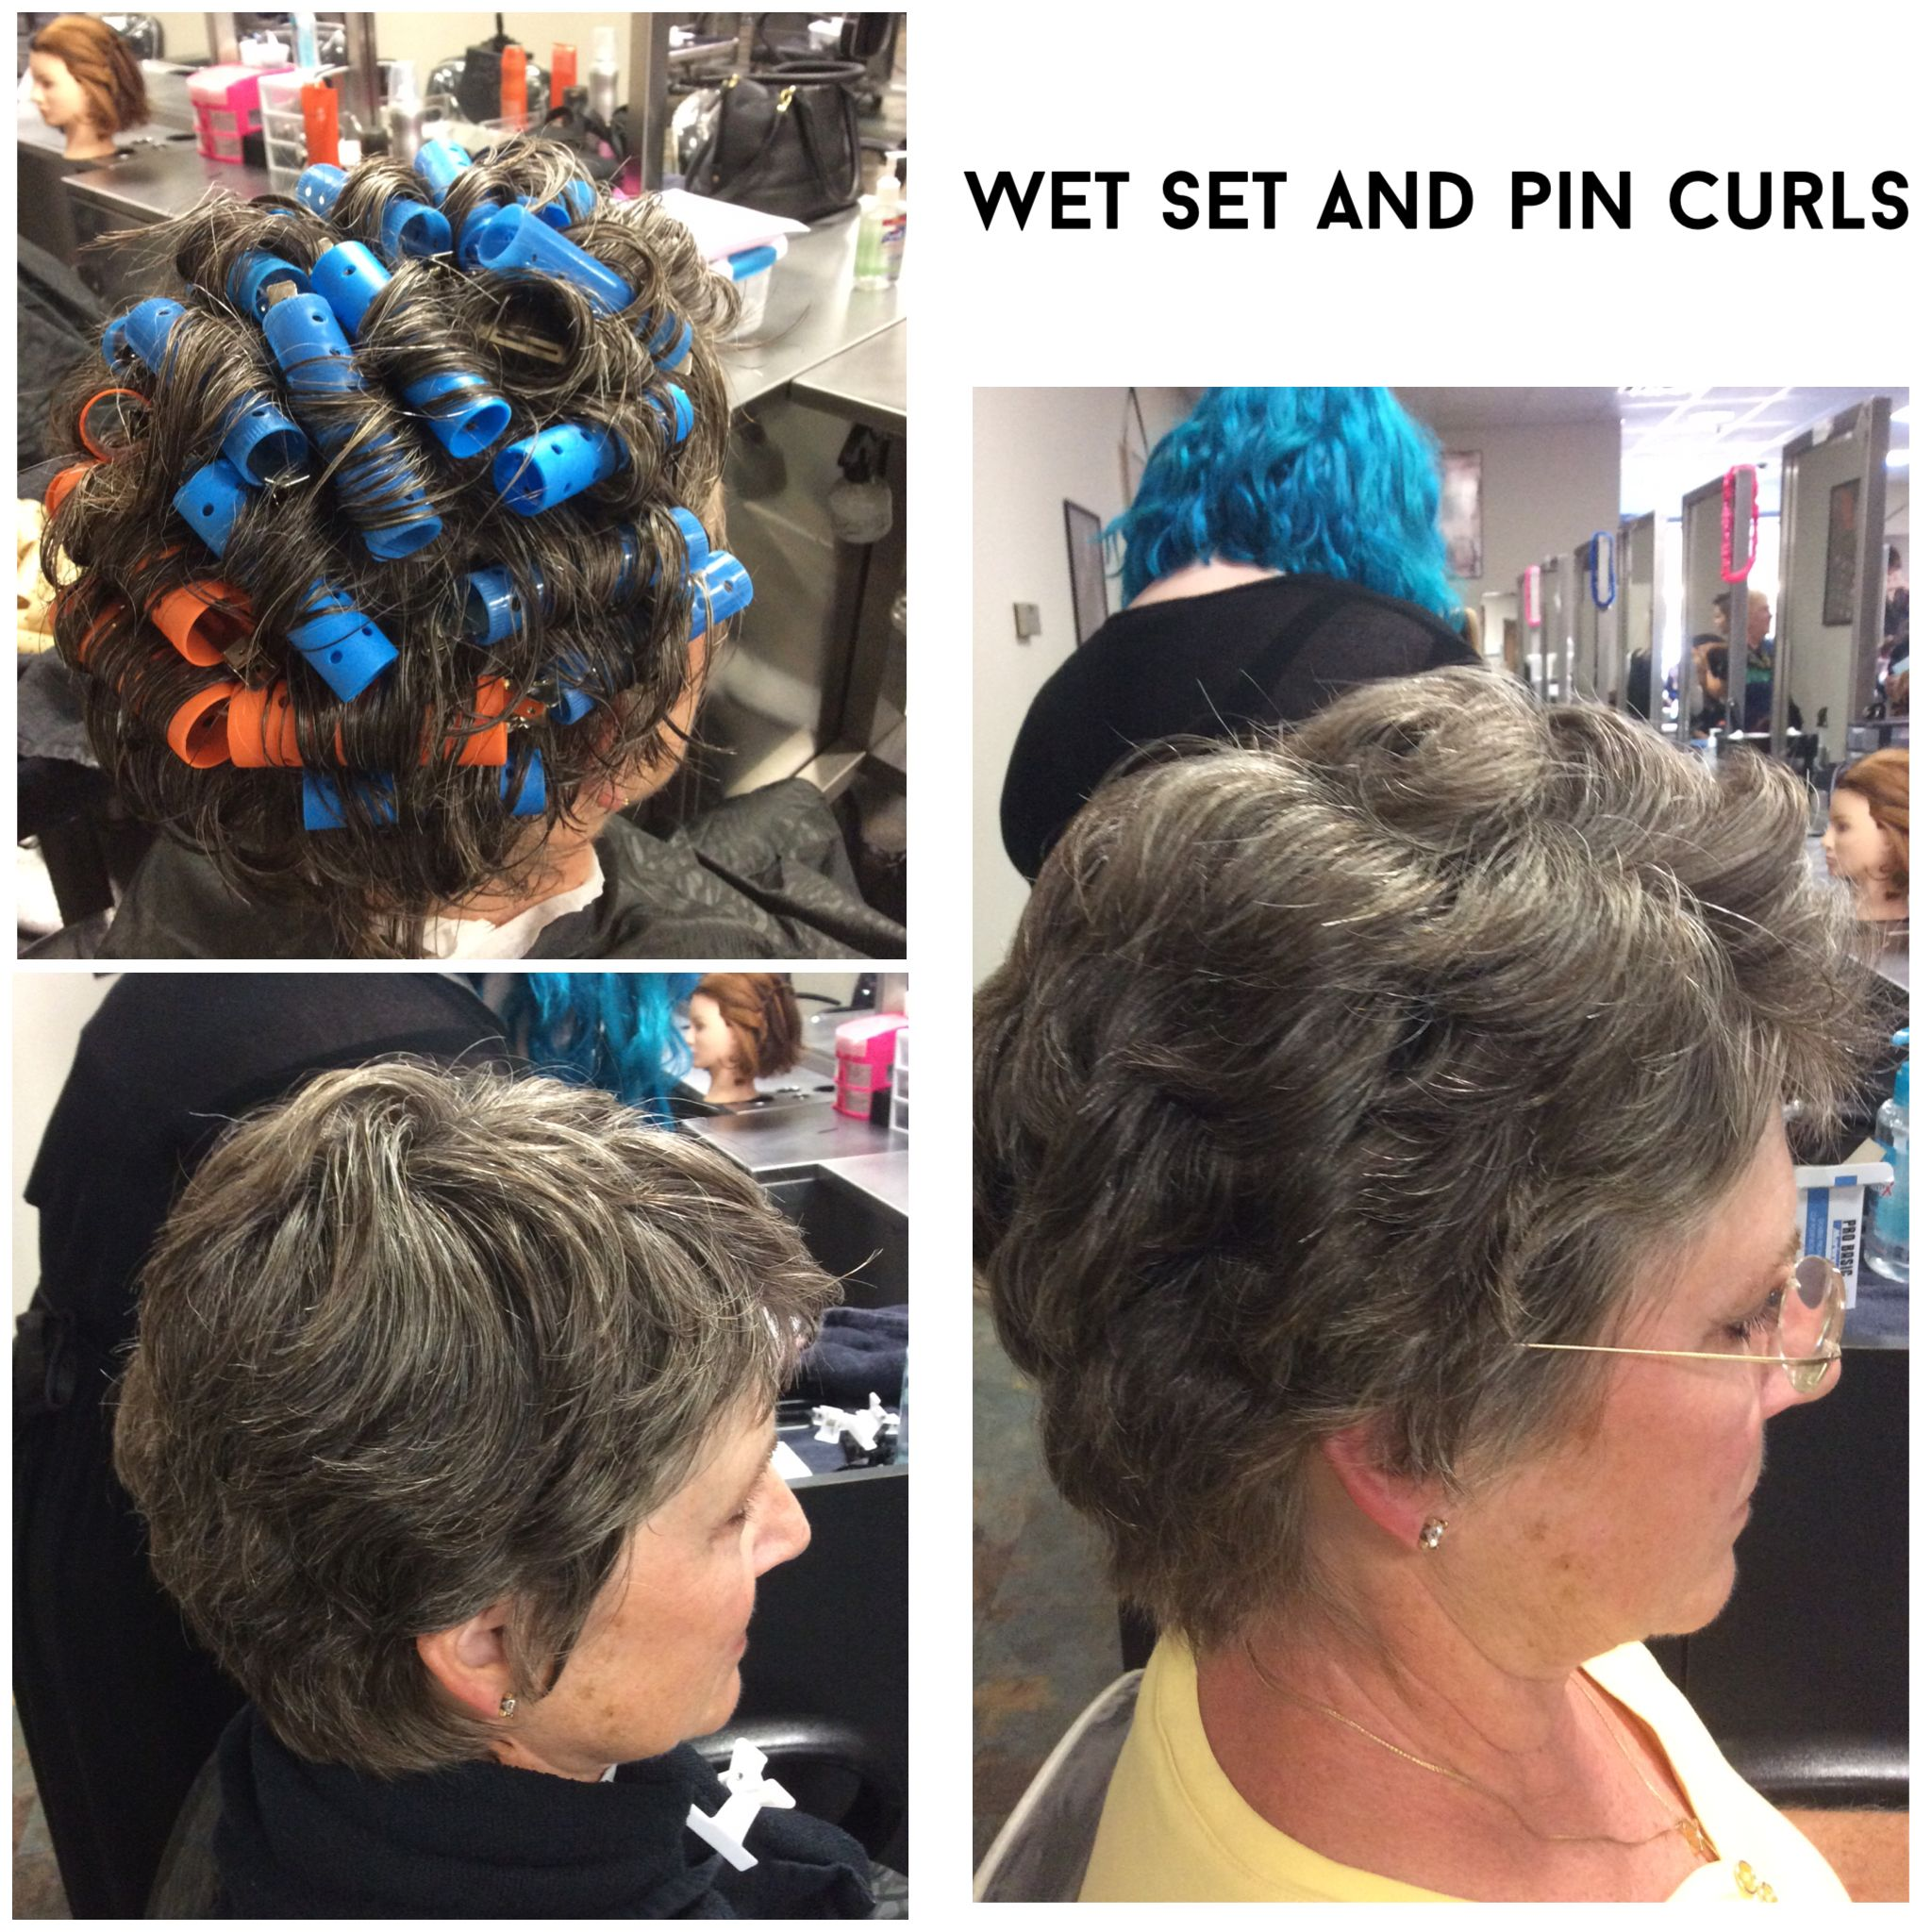 Wet Set with pin curls #thermalstyle #wetstyle #pincurls #wetset